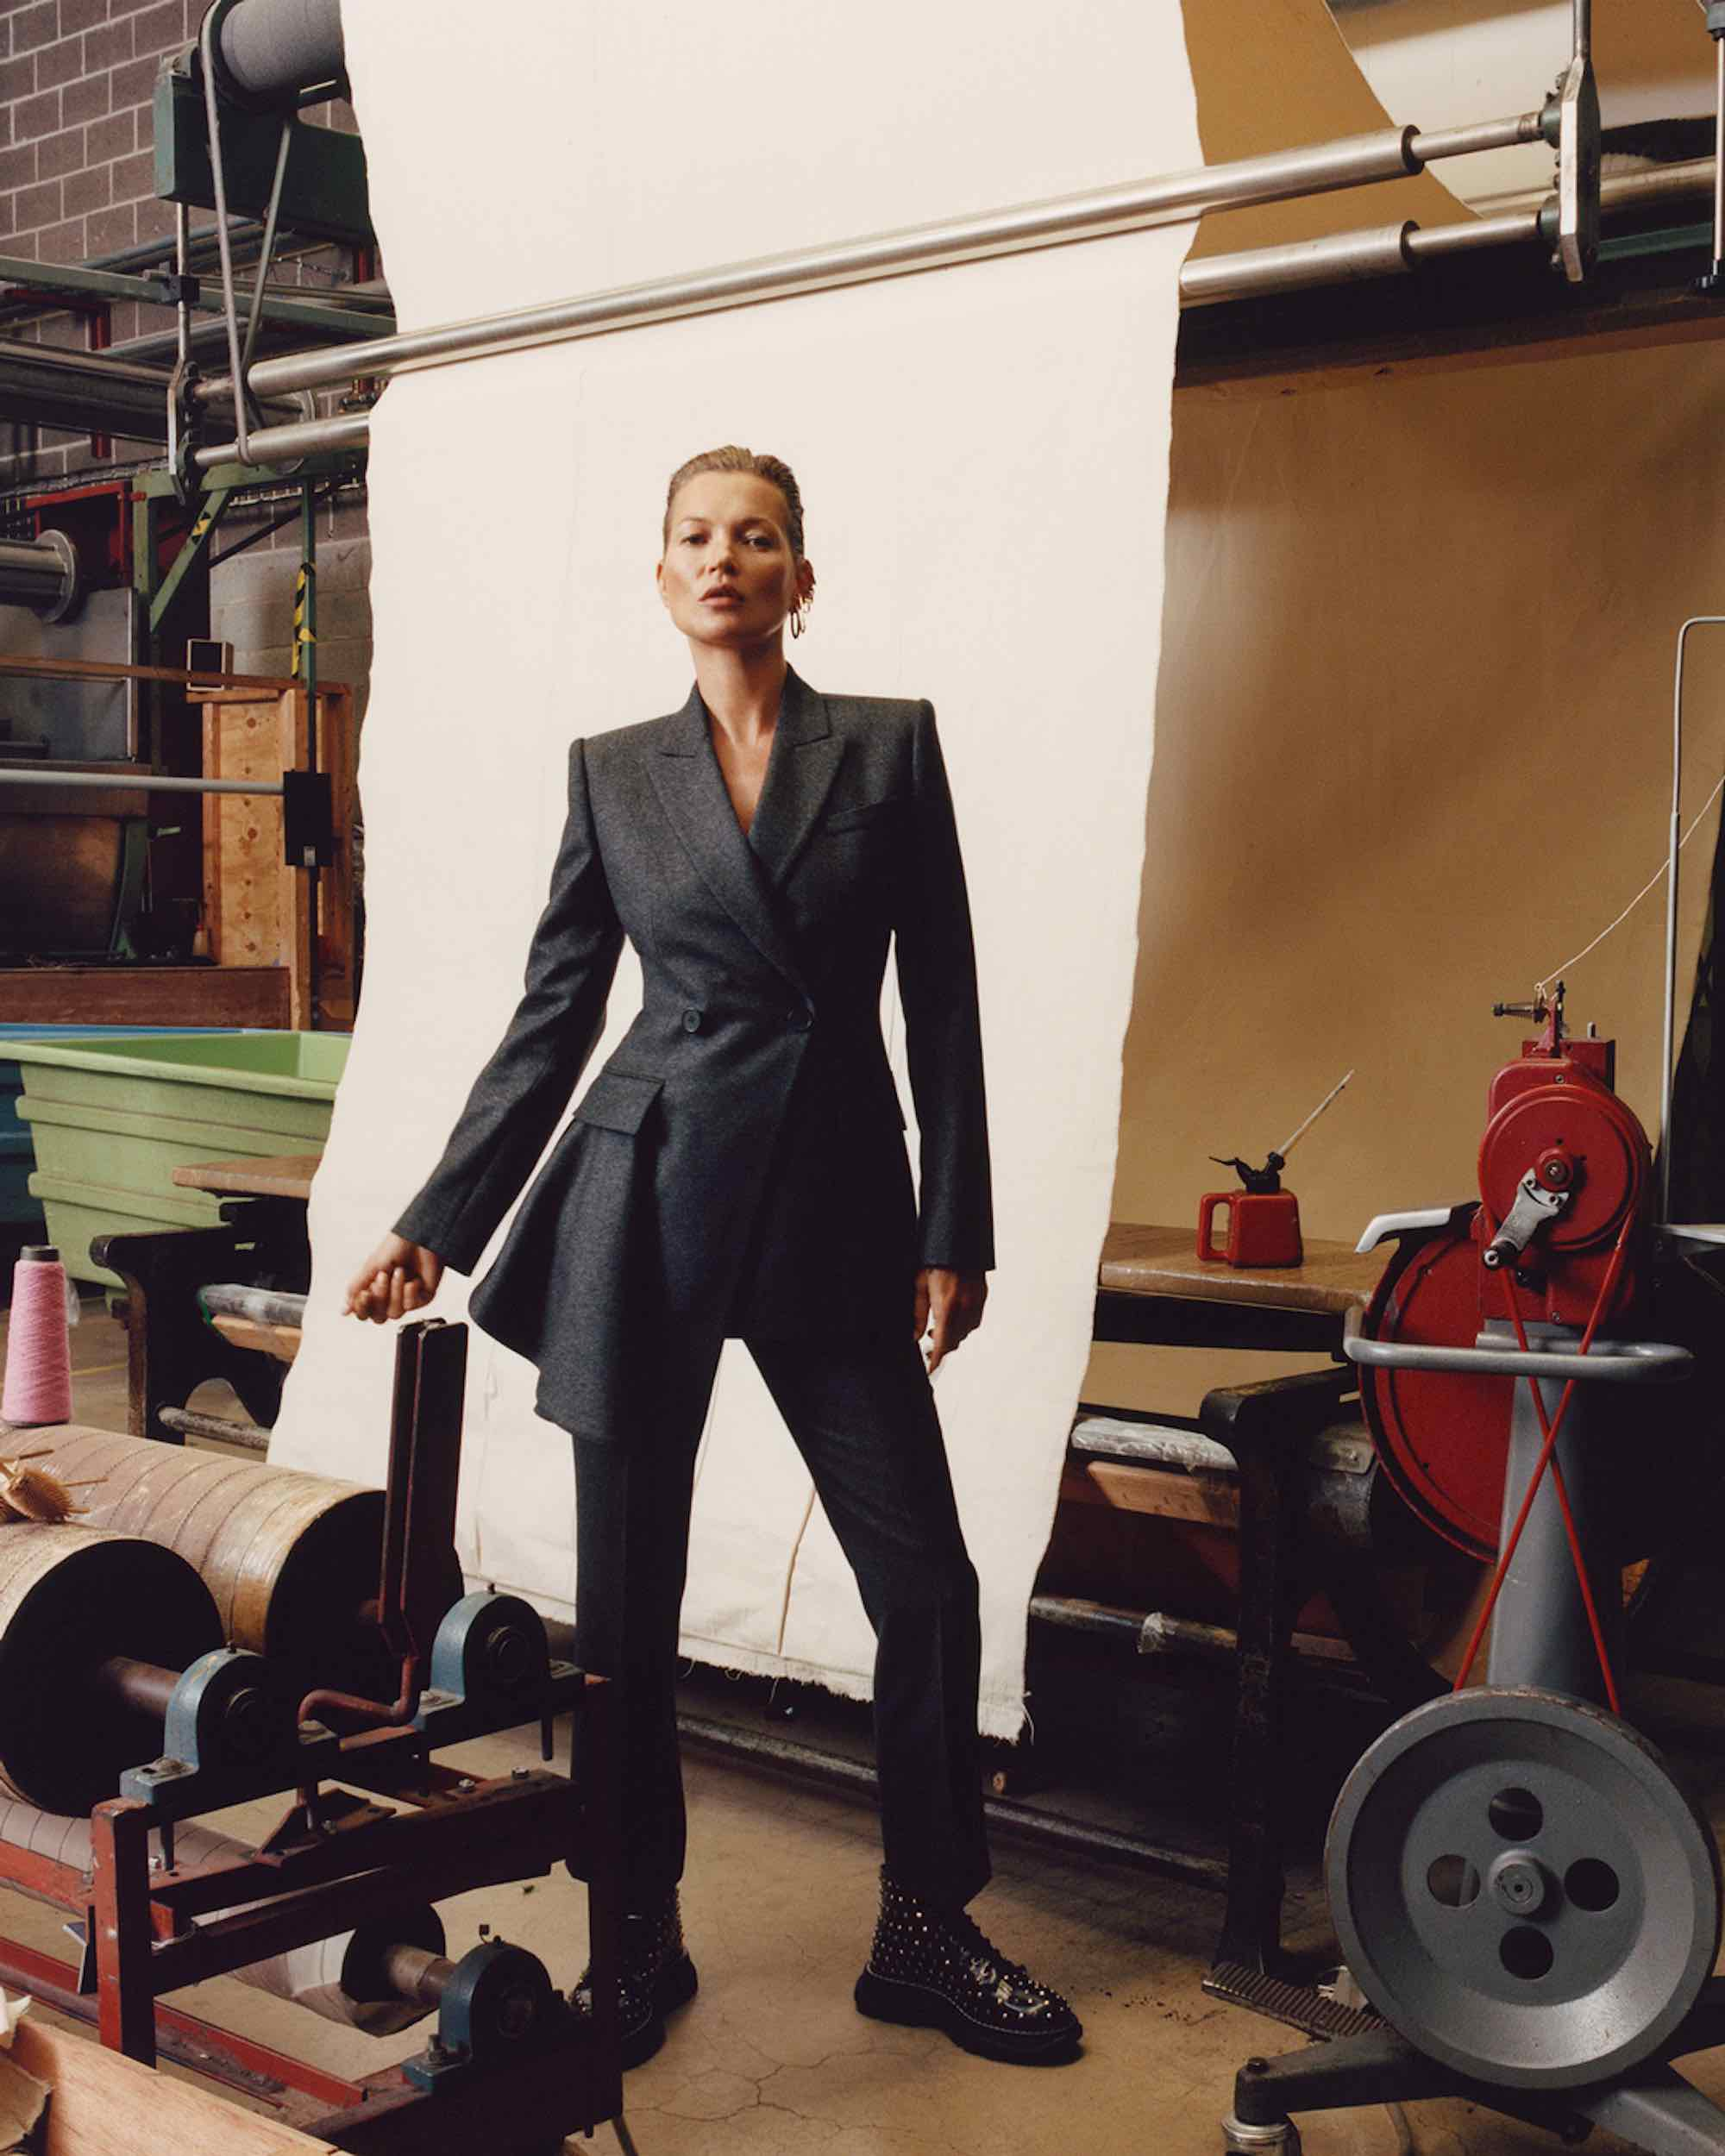 Kate moss Alexander McQueen Jamie Hawkesworth AW19 campaign